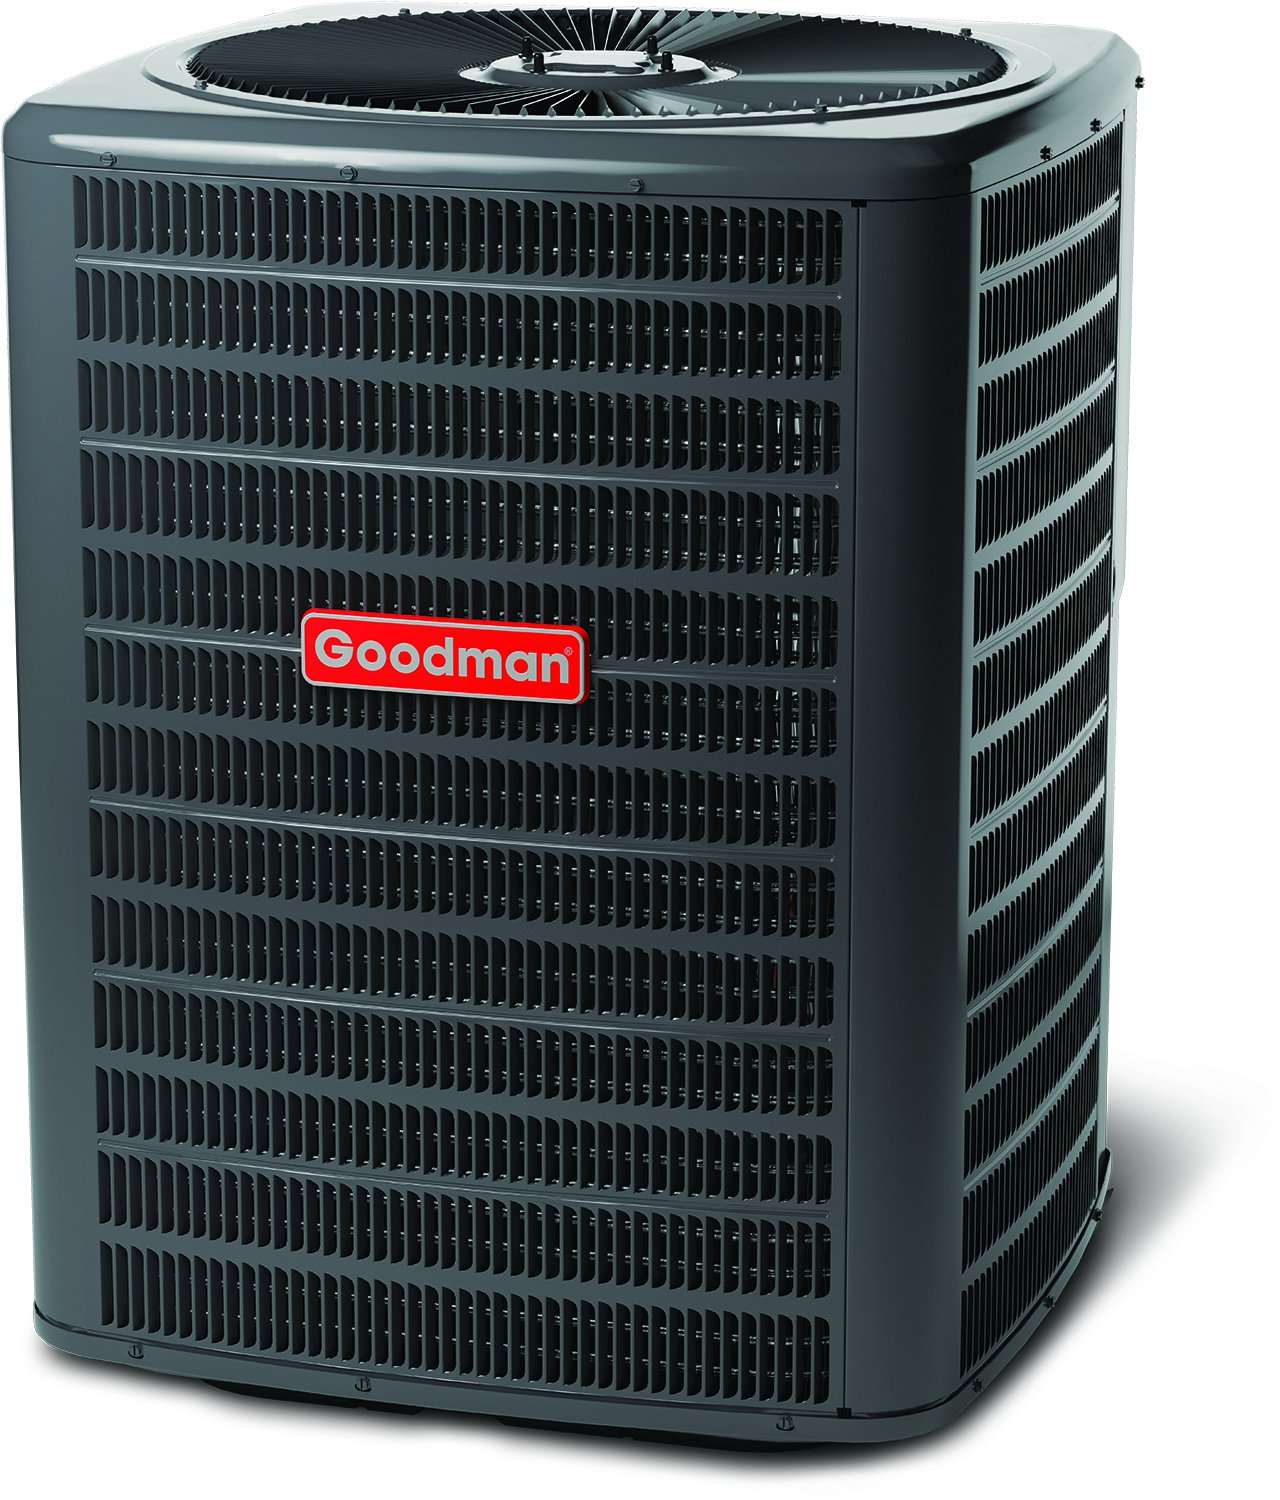 #C2090C 3.0 Ton Goodman 13 SEER Heat Pump System Recommended 3217 Goodman Electric Heat Pump pics with 1280x1500 px on helpvideos.info - Air Conditioners, Air Coolers and more